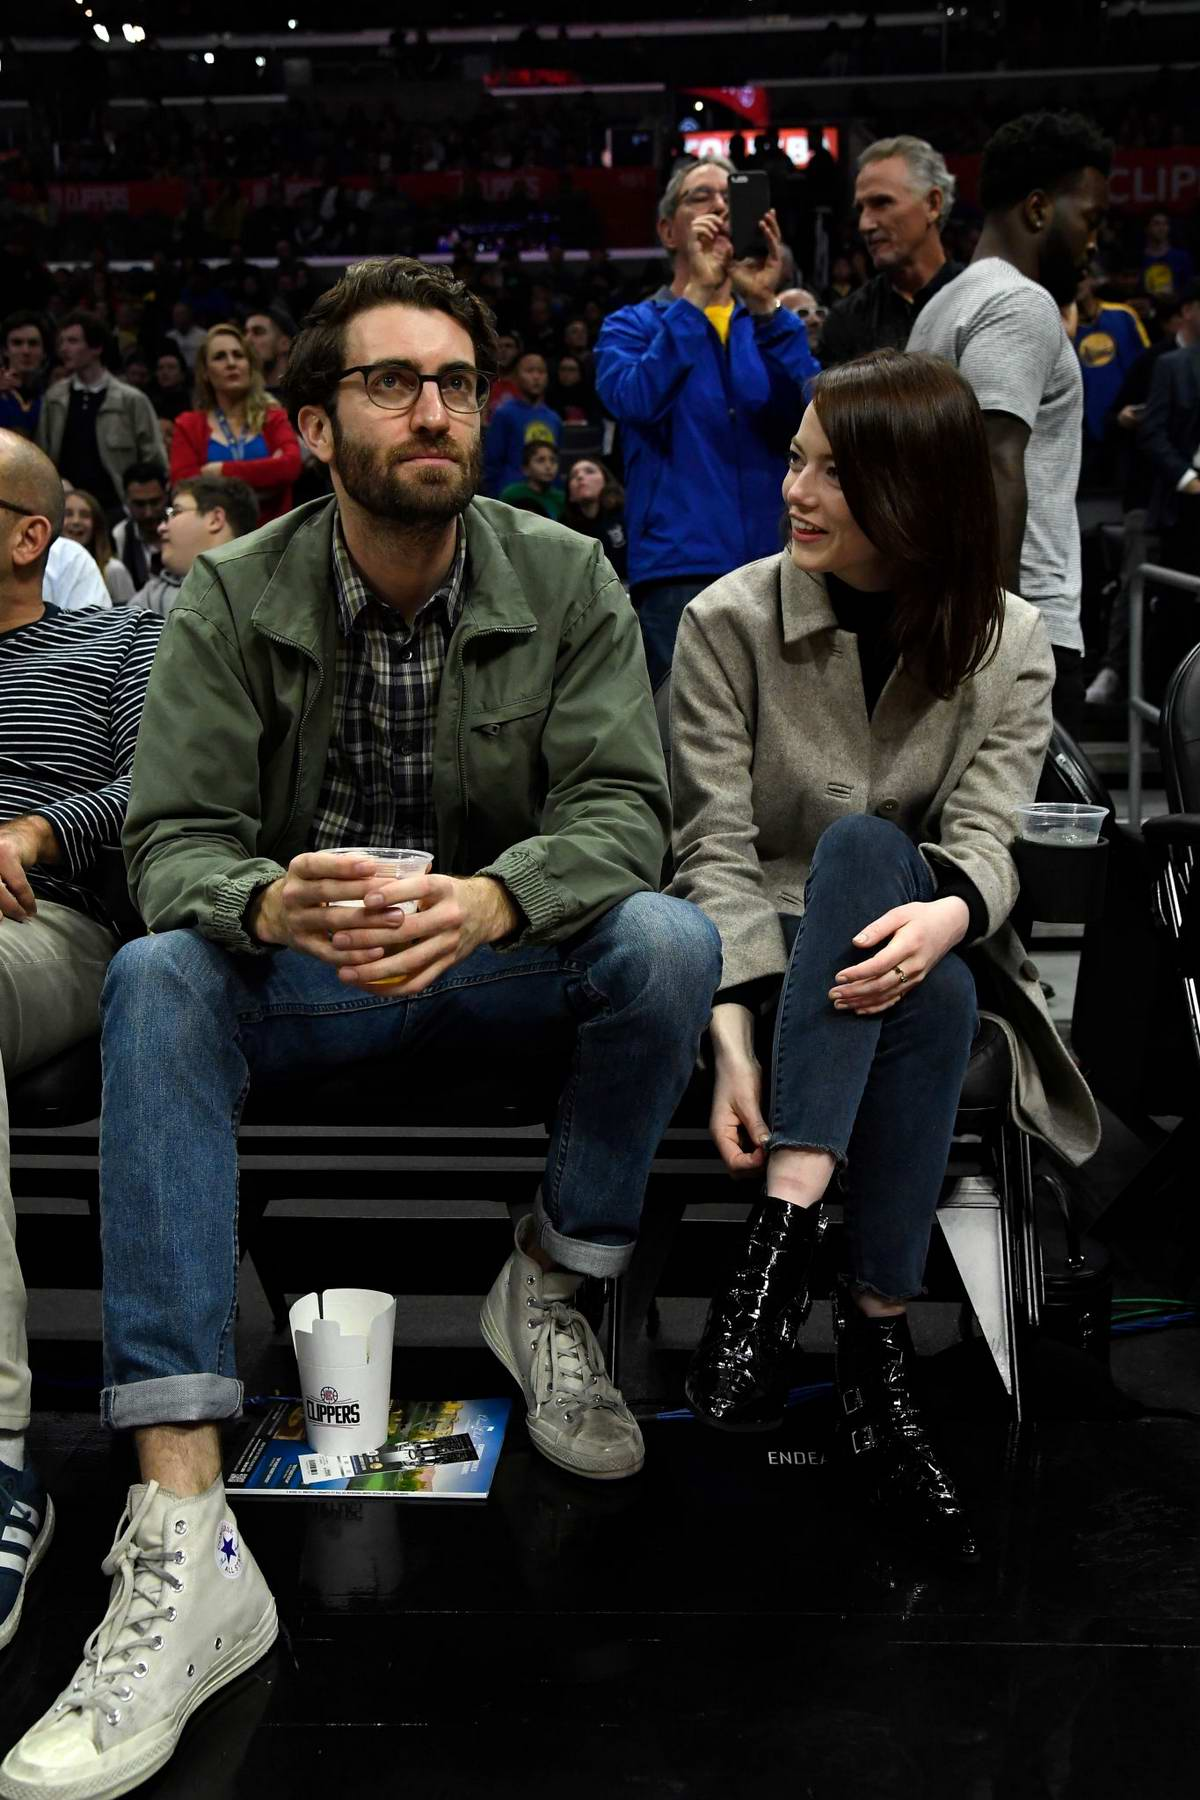 Emma Stone and Dave McCary attends the Golden State Warriors v Los Angeles Clippers basketball game at Staples Center in Los Angeles